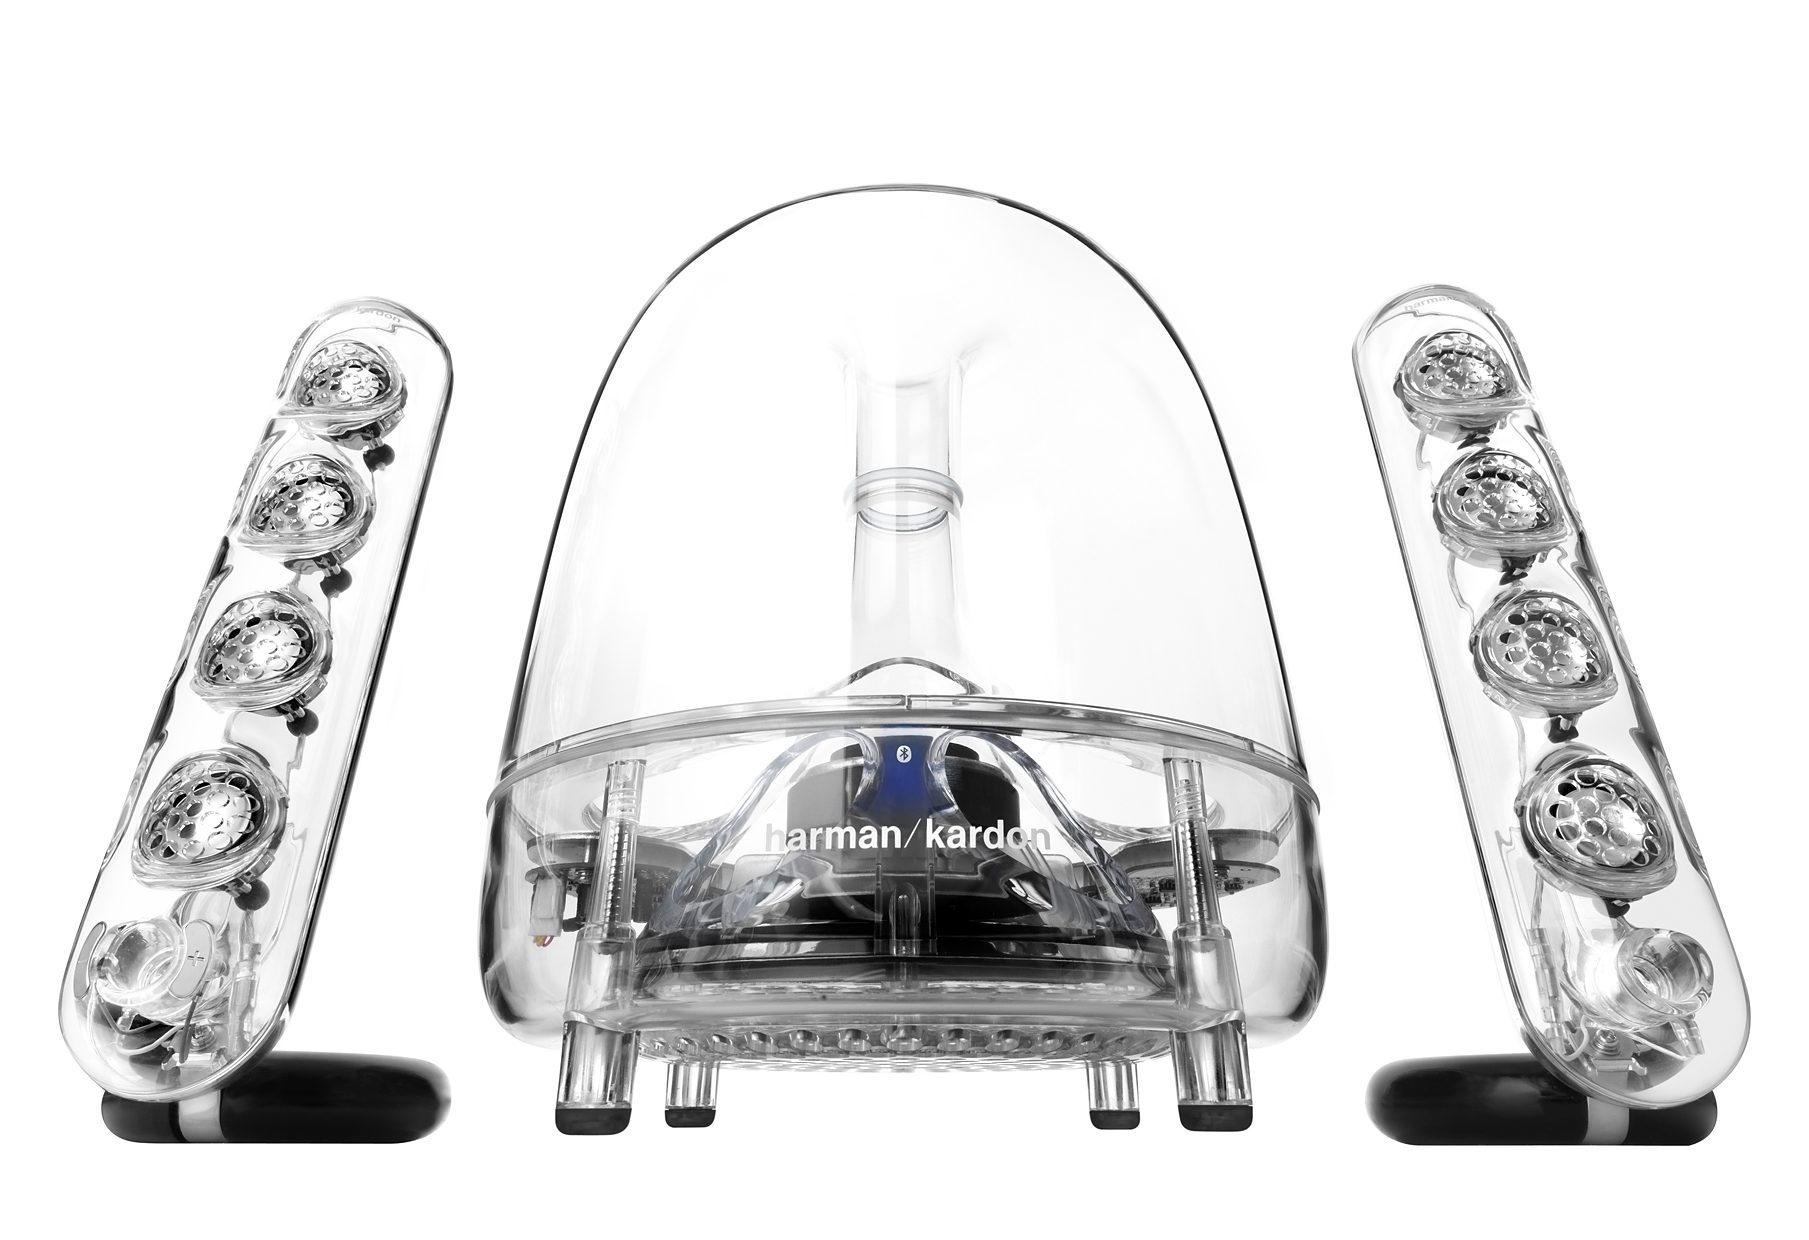 Harman/Kardon Soundsticks Wireless, 2.1 Soundsystem